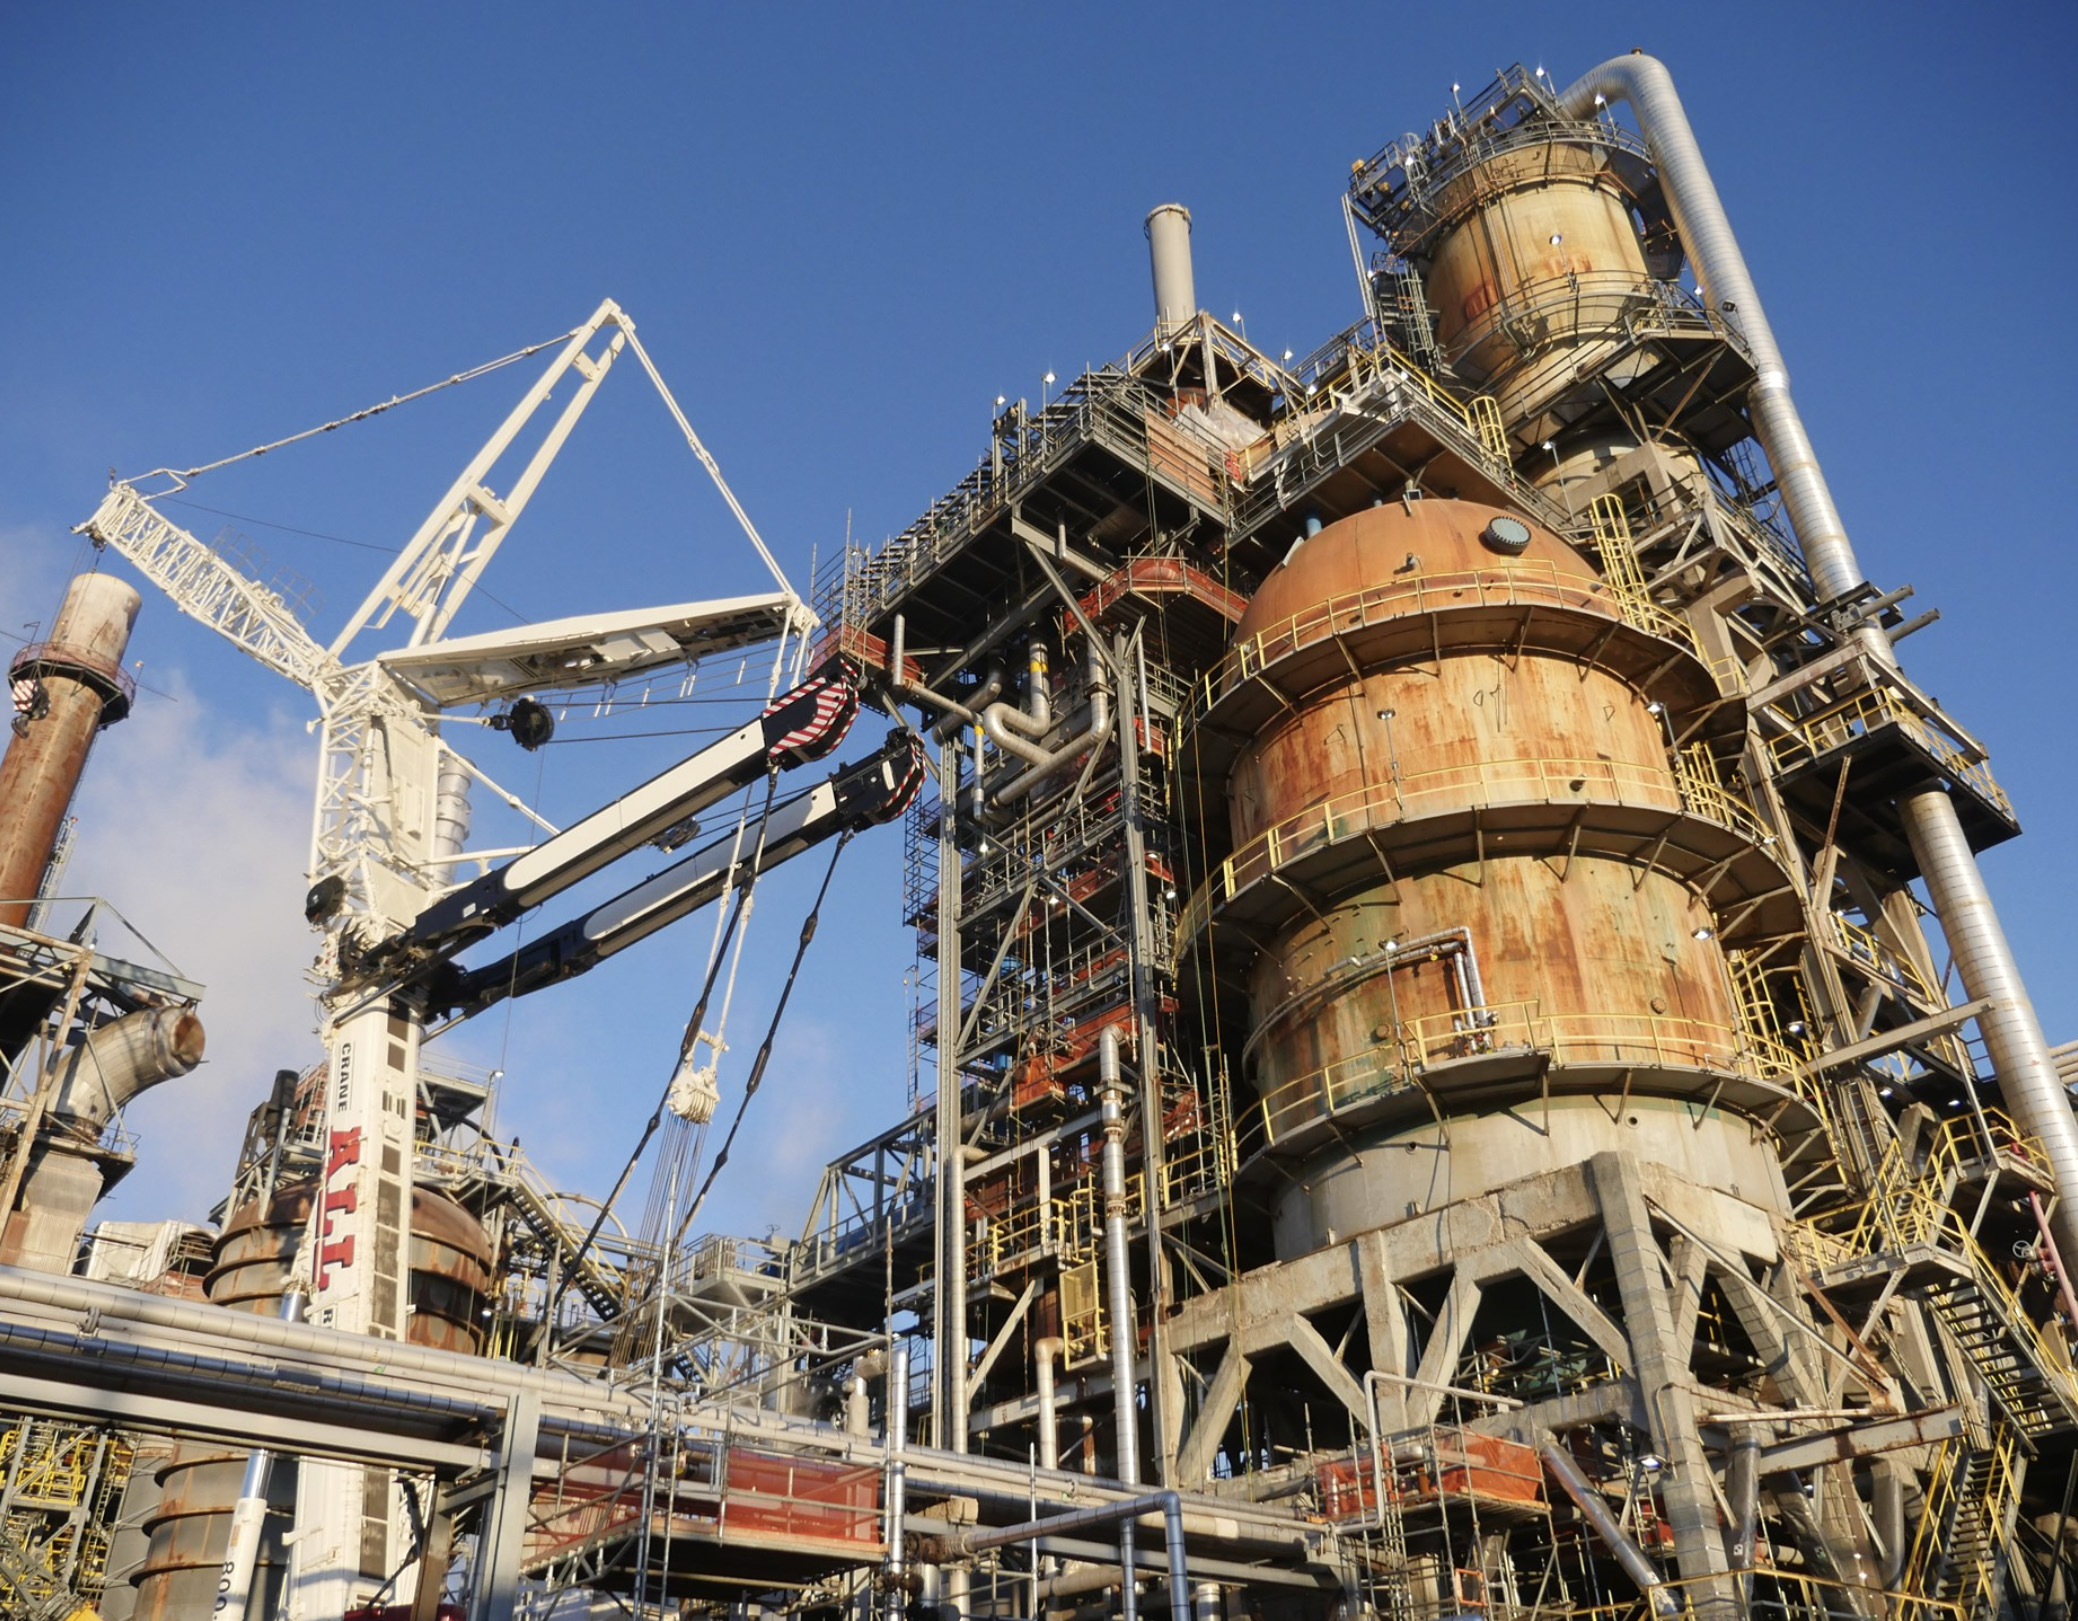 Lima Refinery goes non-union for fall turnaround